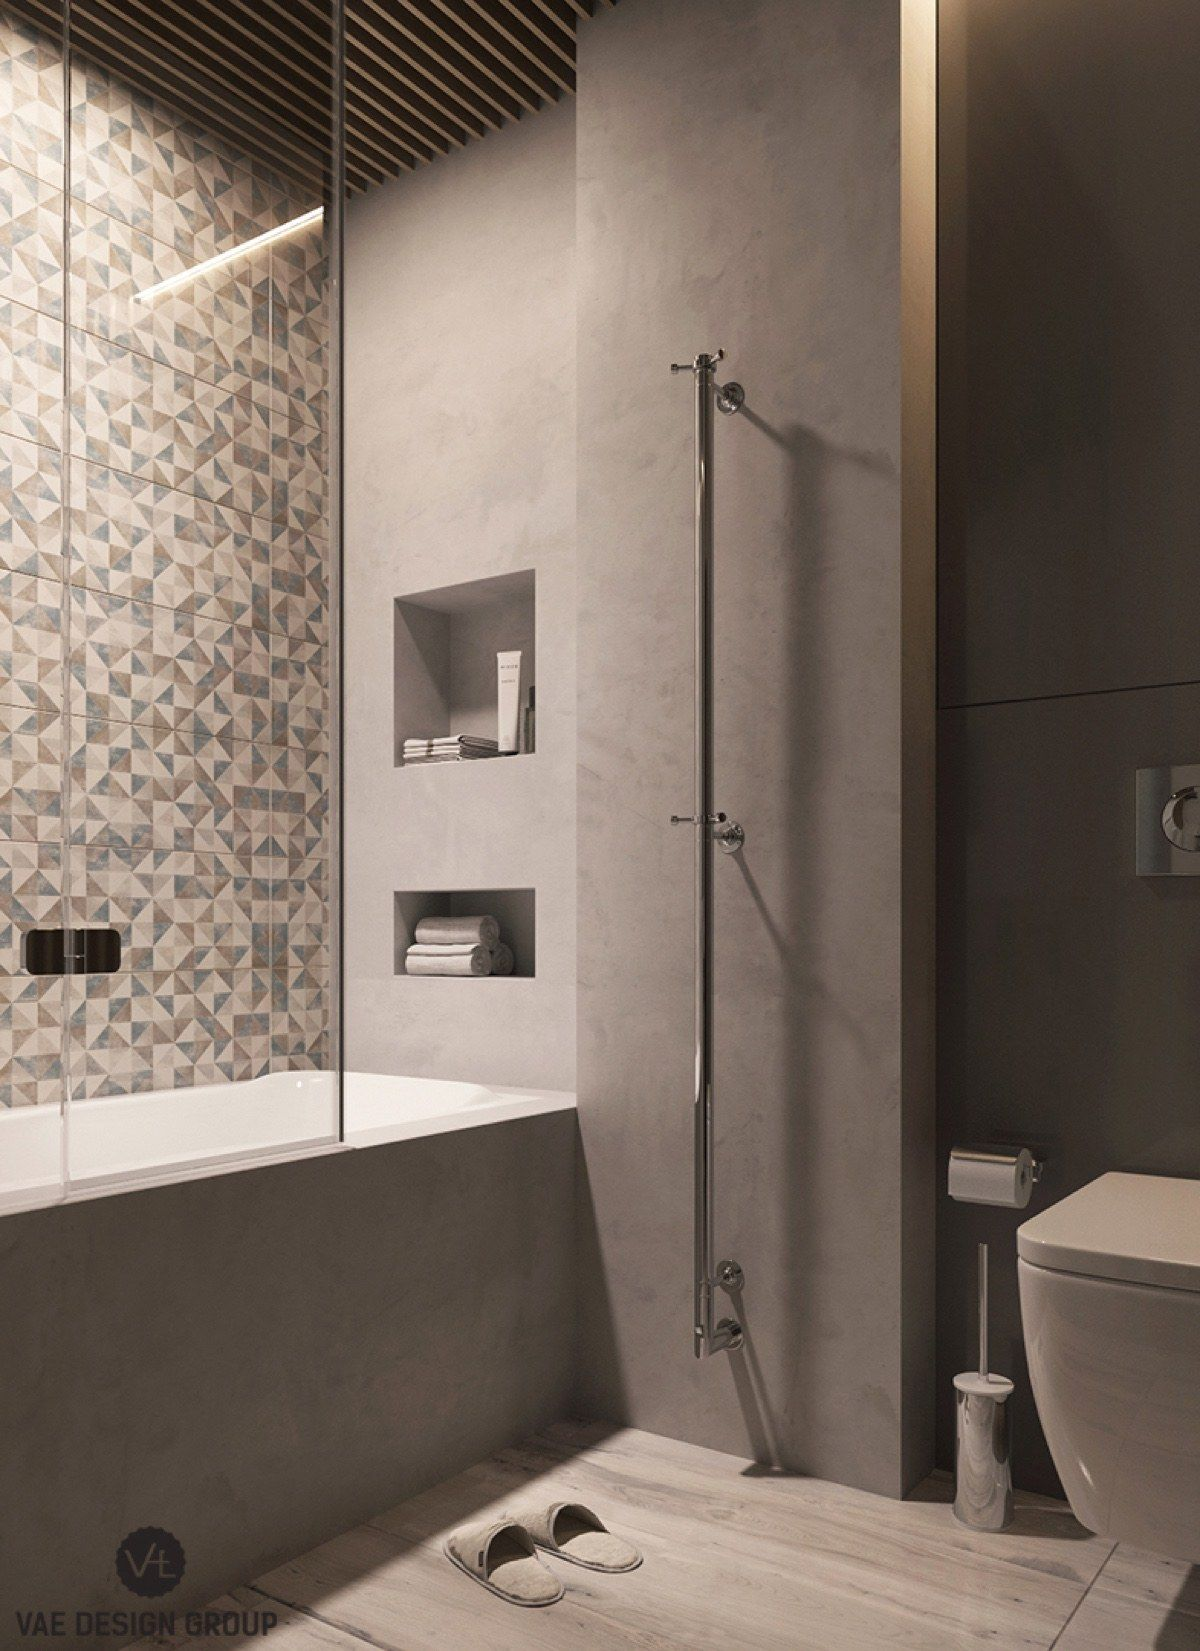 the ensuite binds bathroom duties to master bedroom colouring charcoal cabinetry and light wooden features - Multi Bathroom Design